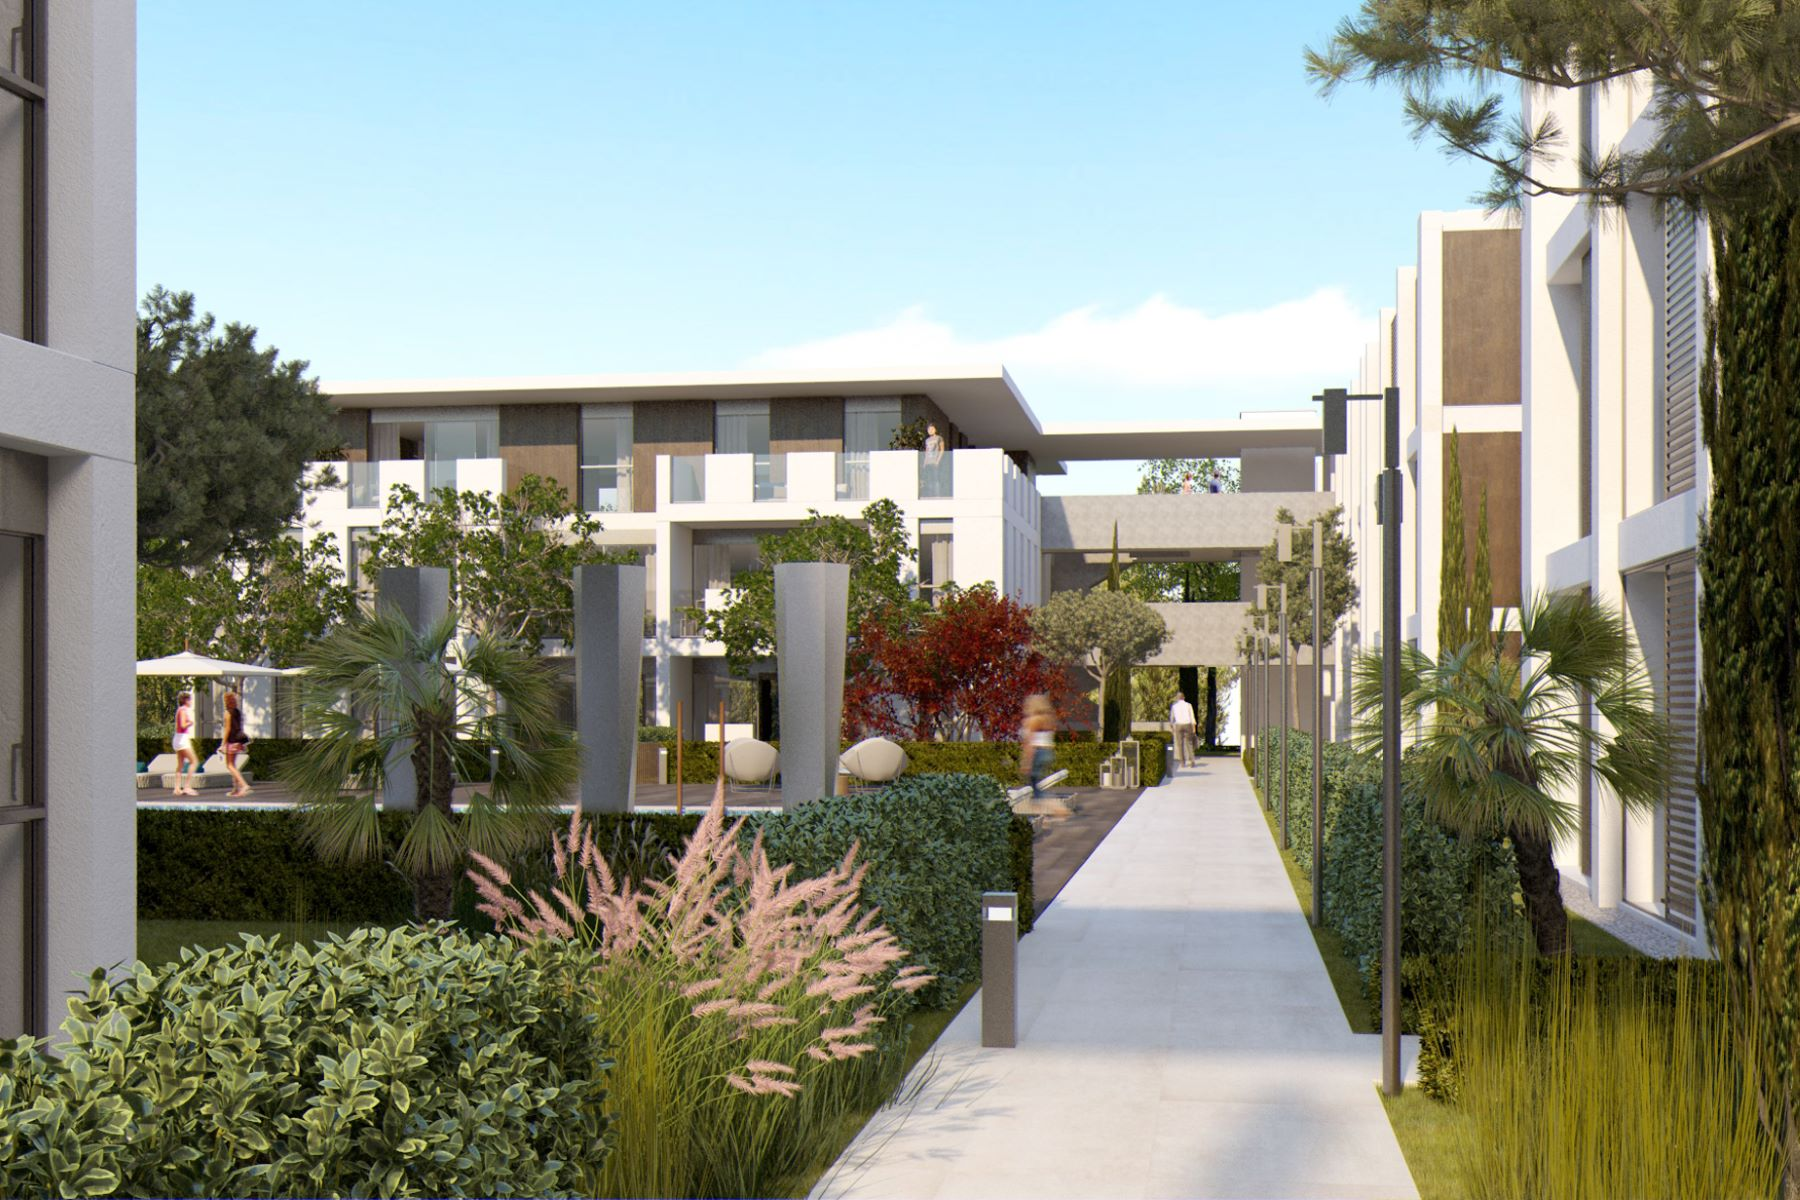 Apartments for Sale at Ground floor with private garden in a new residential complex Platja D Aro, Costa Brava 17250 Spain